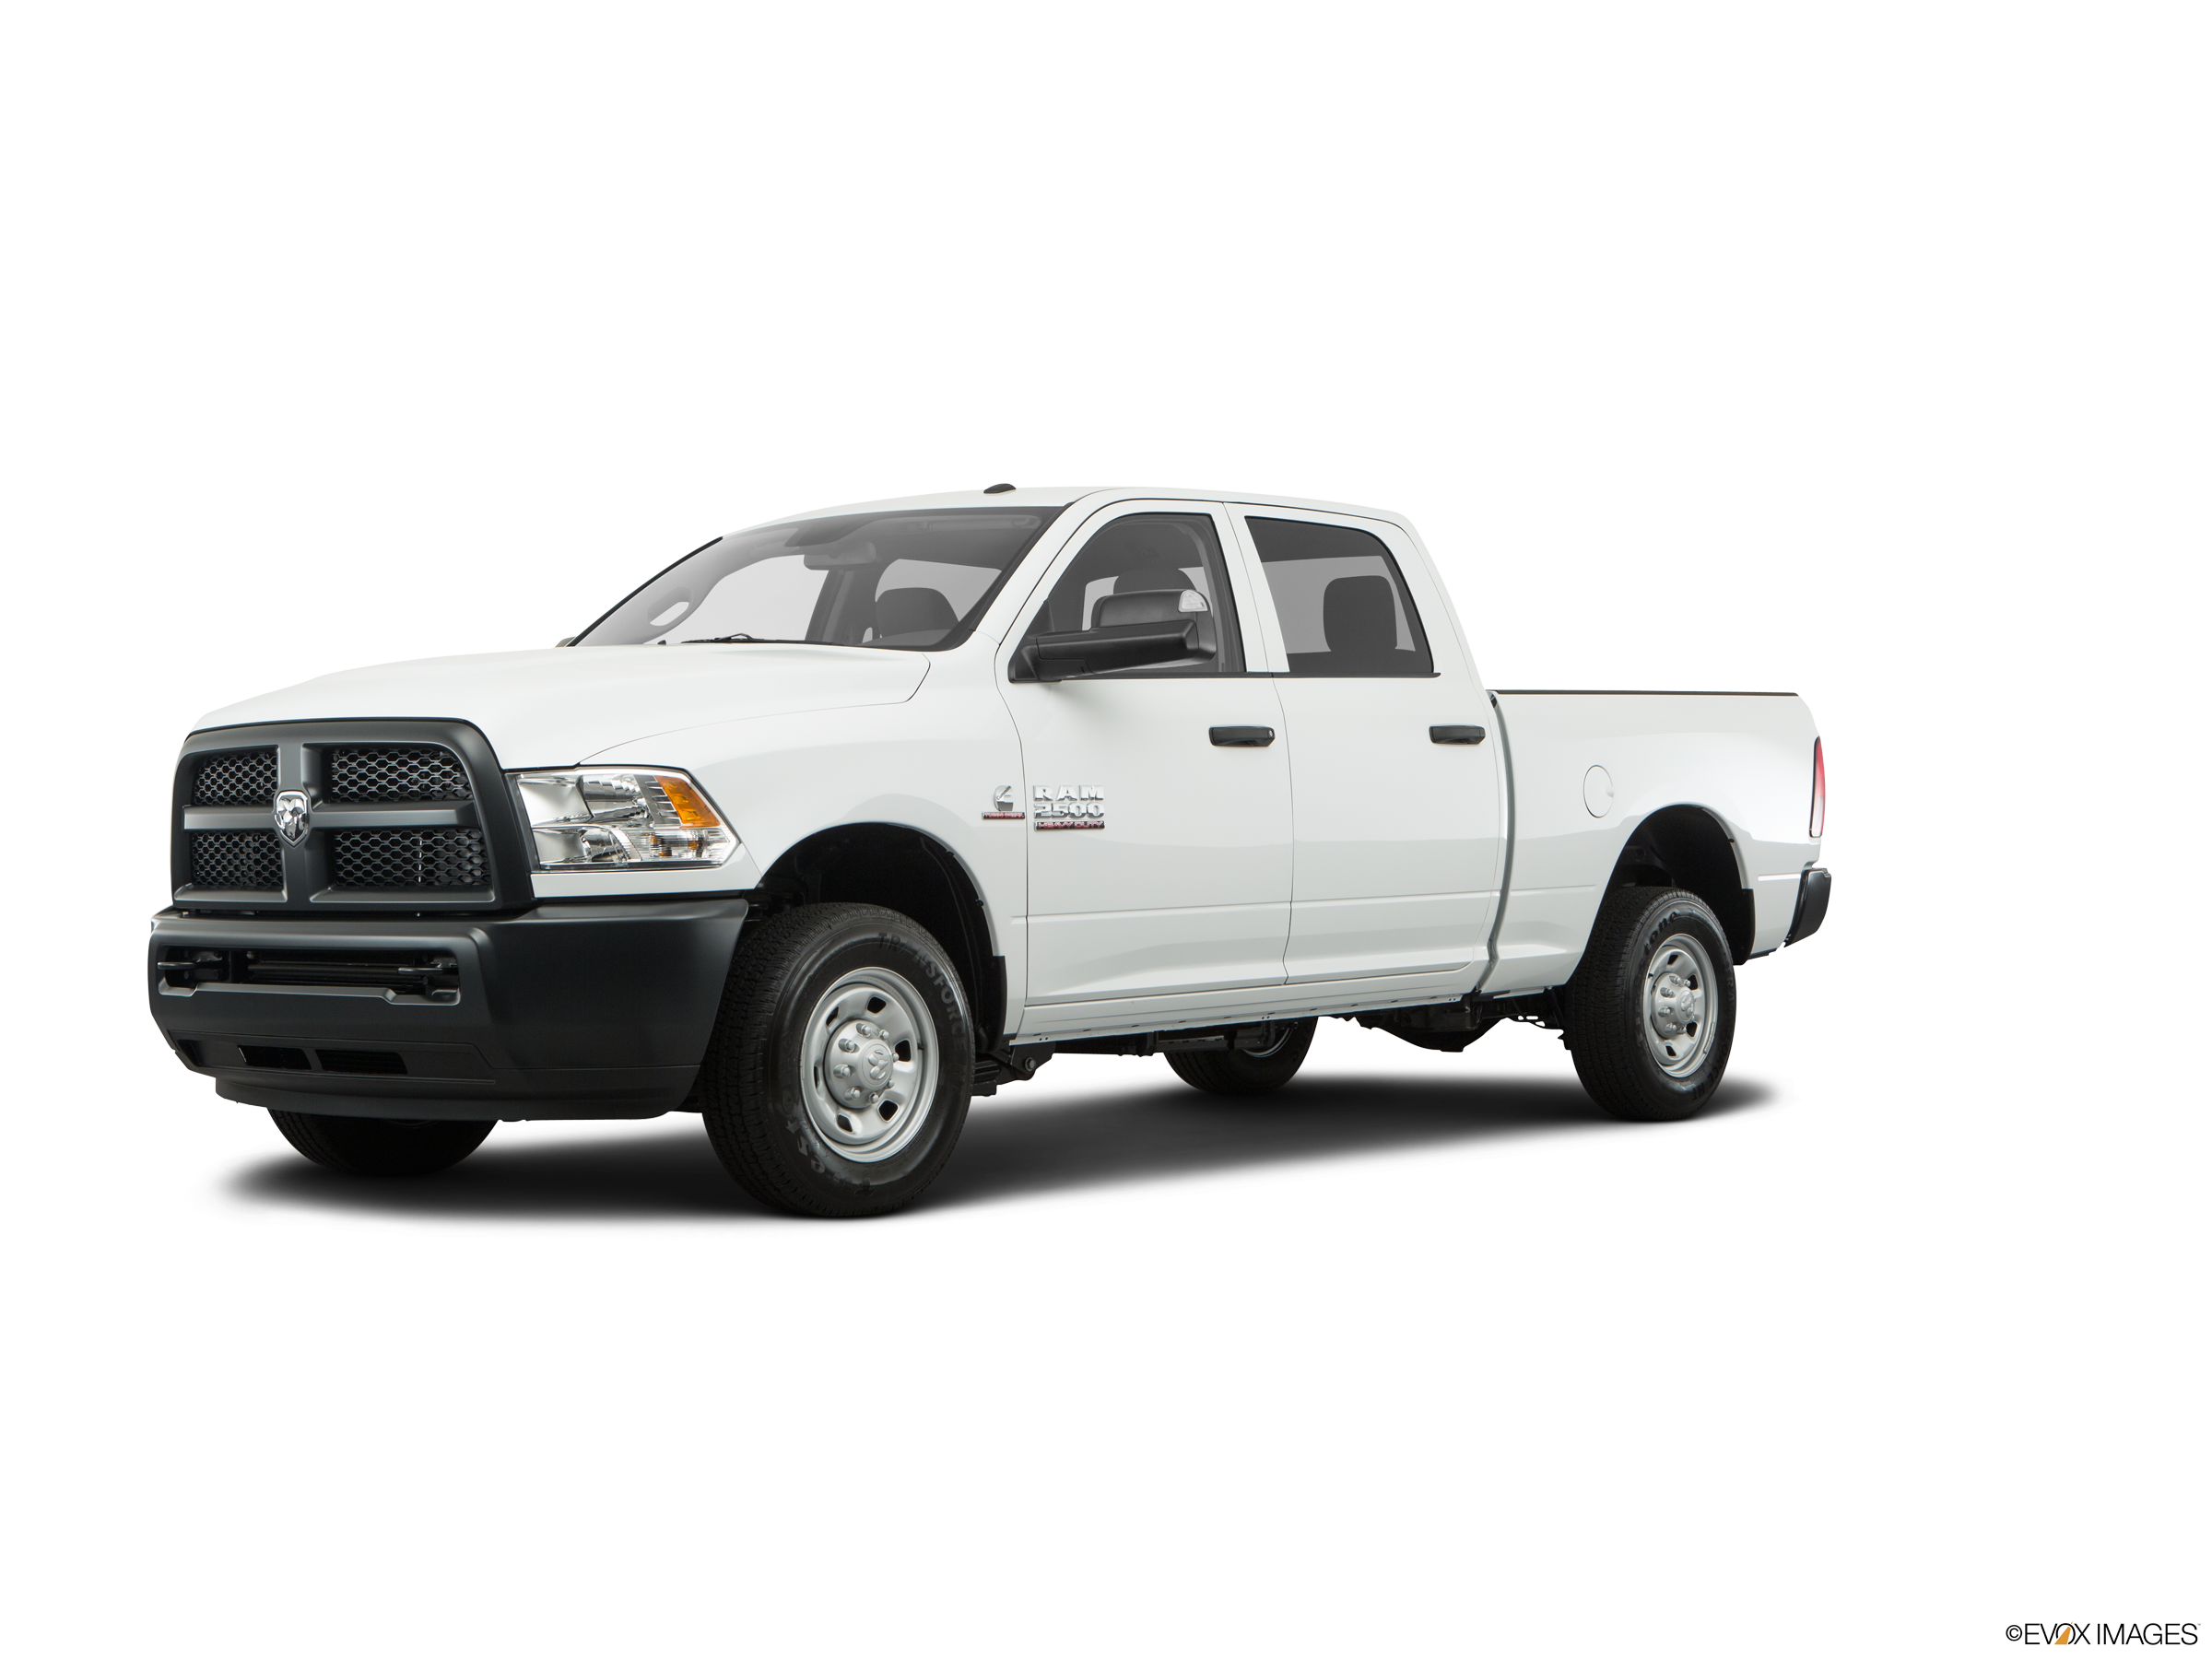 2018 Ram 2500 Trucks Pricing Reviews Ratings Kelley